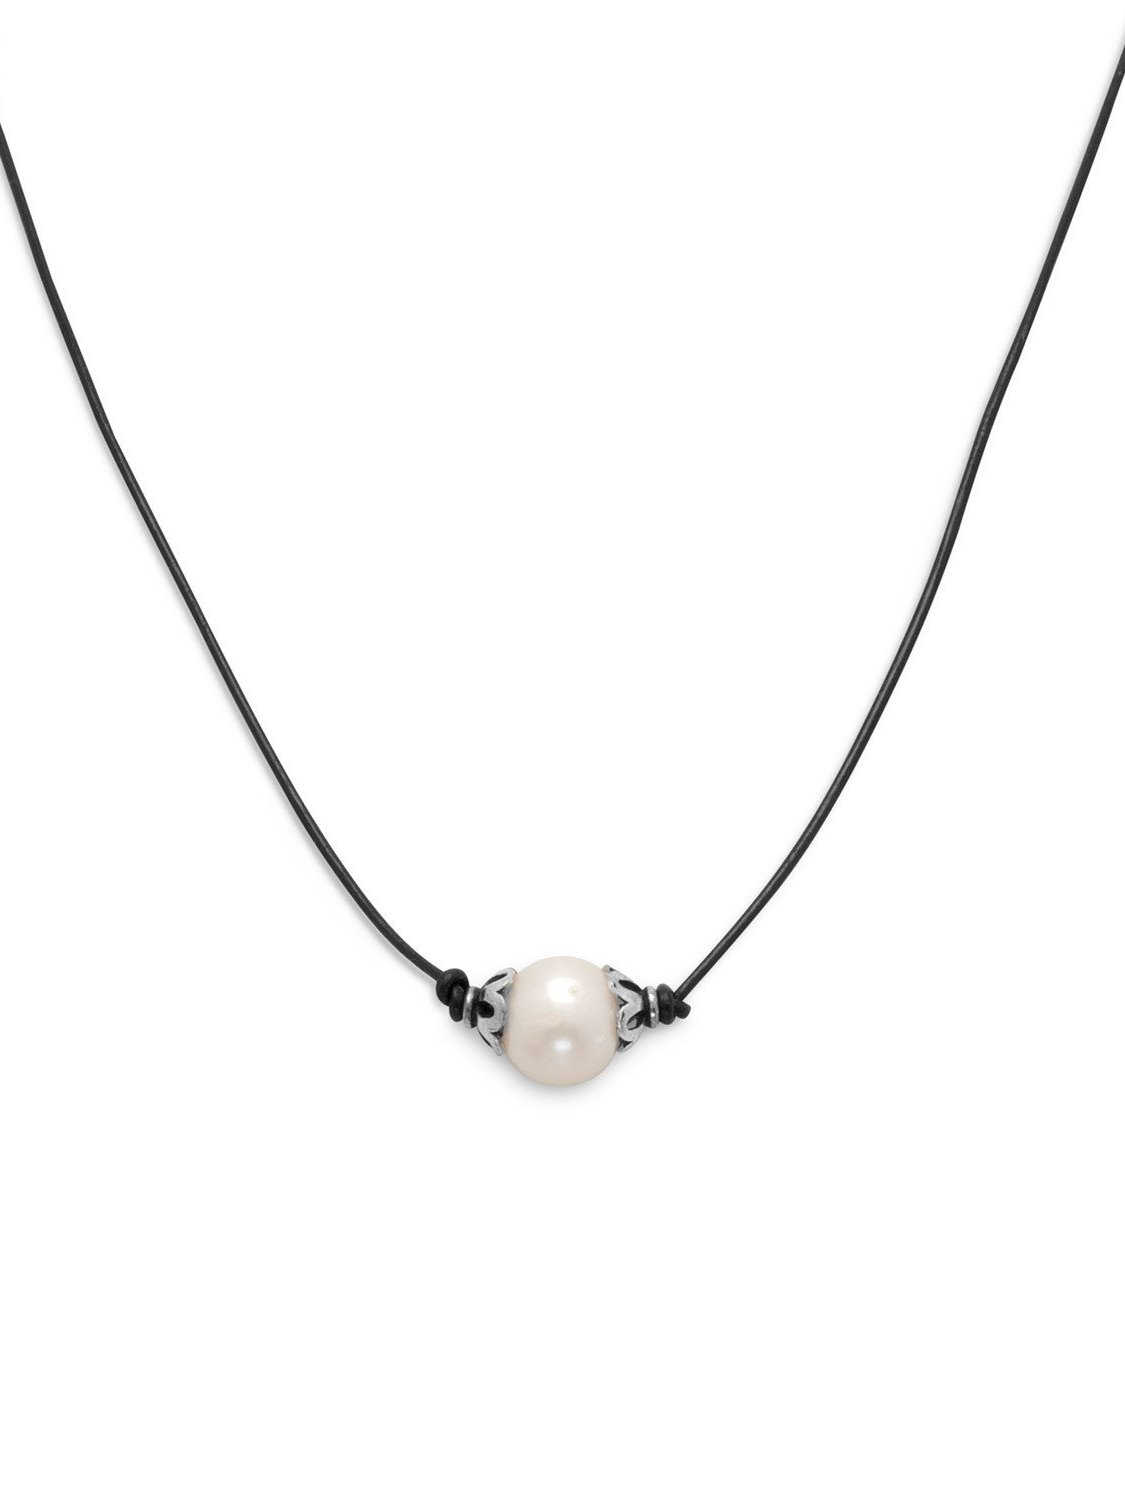 BLACK LEATHER CORD NECKLACE WITH FOOTBALL CHARM